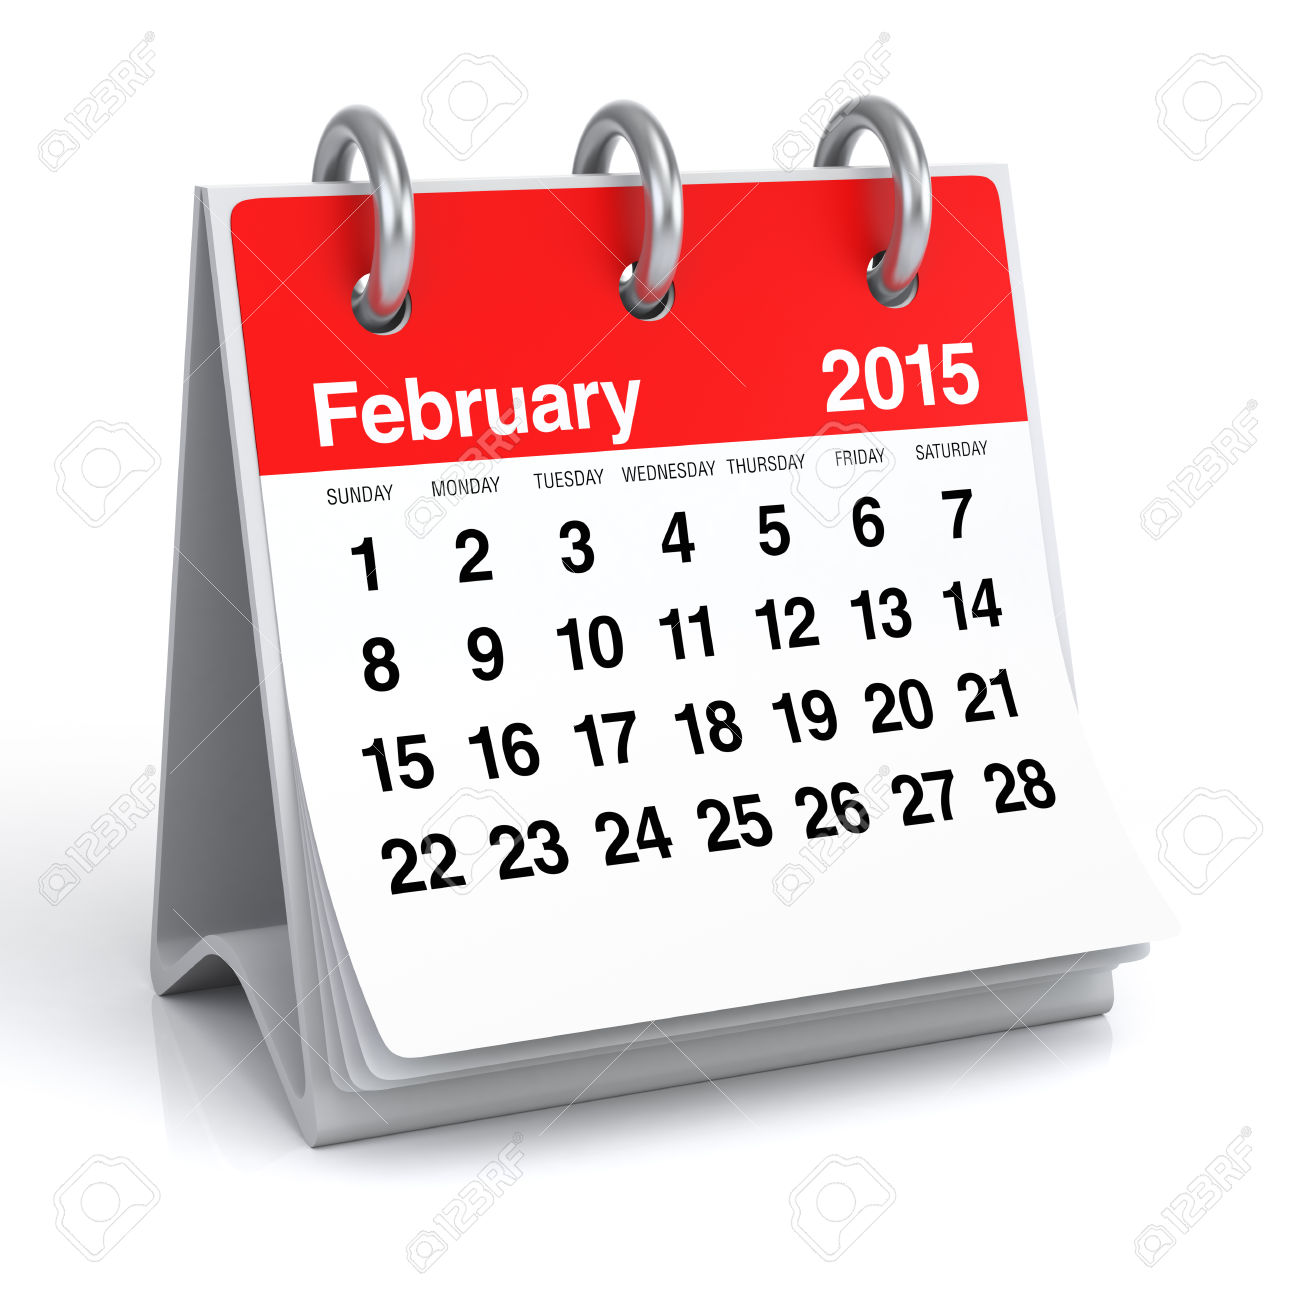 February 2015 calendar page clipart clip freeuse stock February 2015 - Calendar Stock Photo, Picture And Royalty Free ... clip freeuse stock